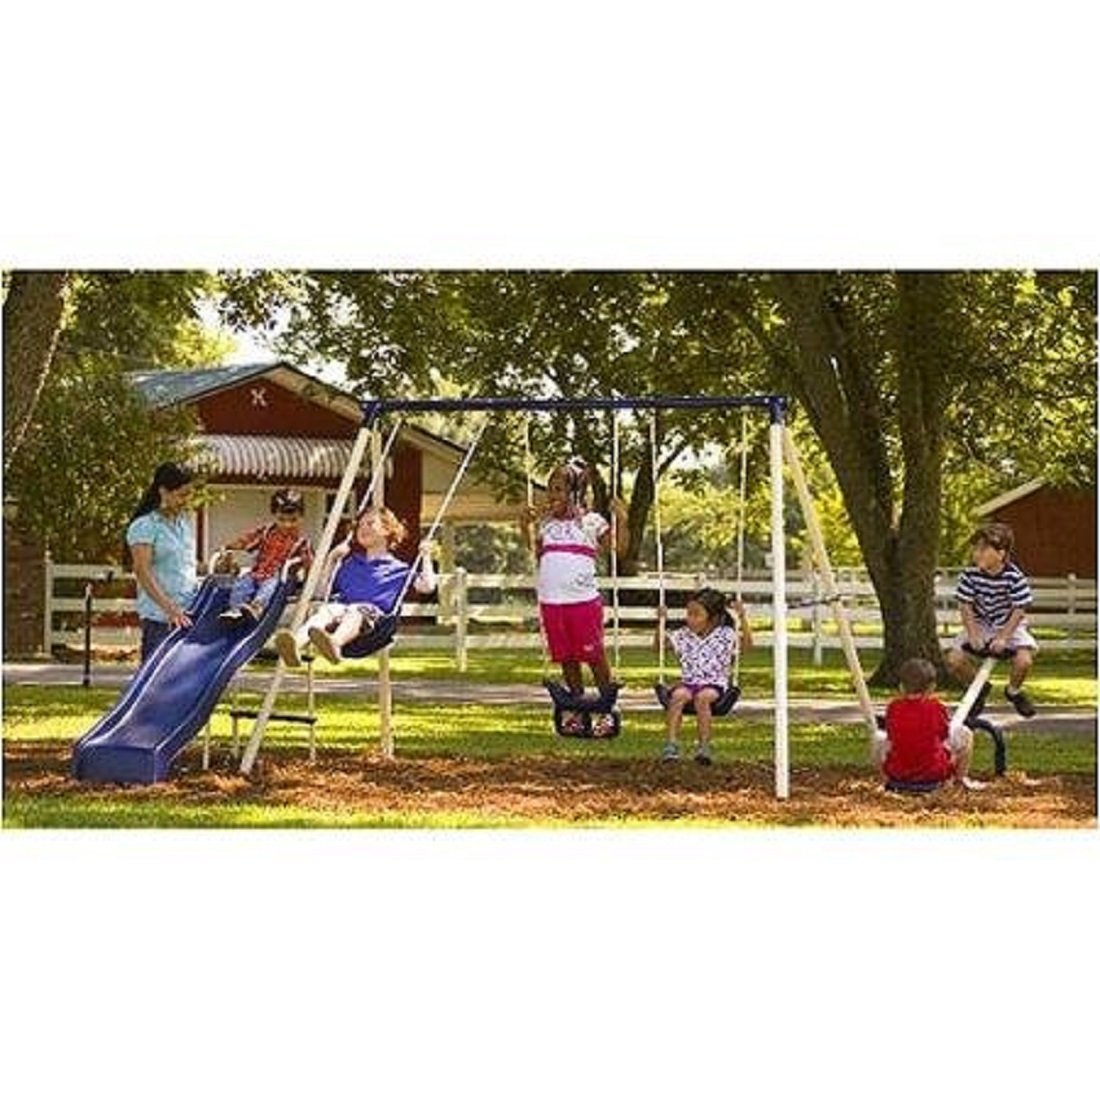 Flexible Flyer Triple Fun II Metal Swing Set by Flexible Flyer